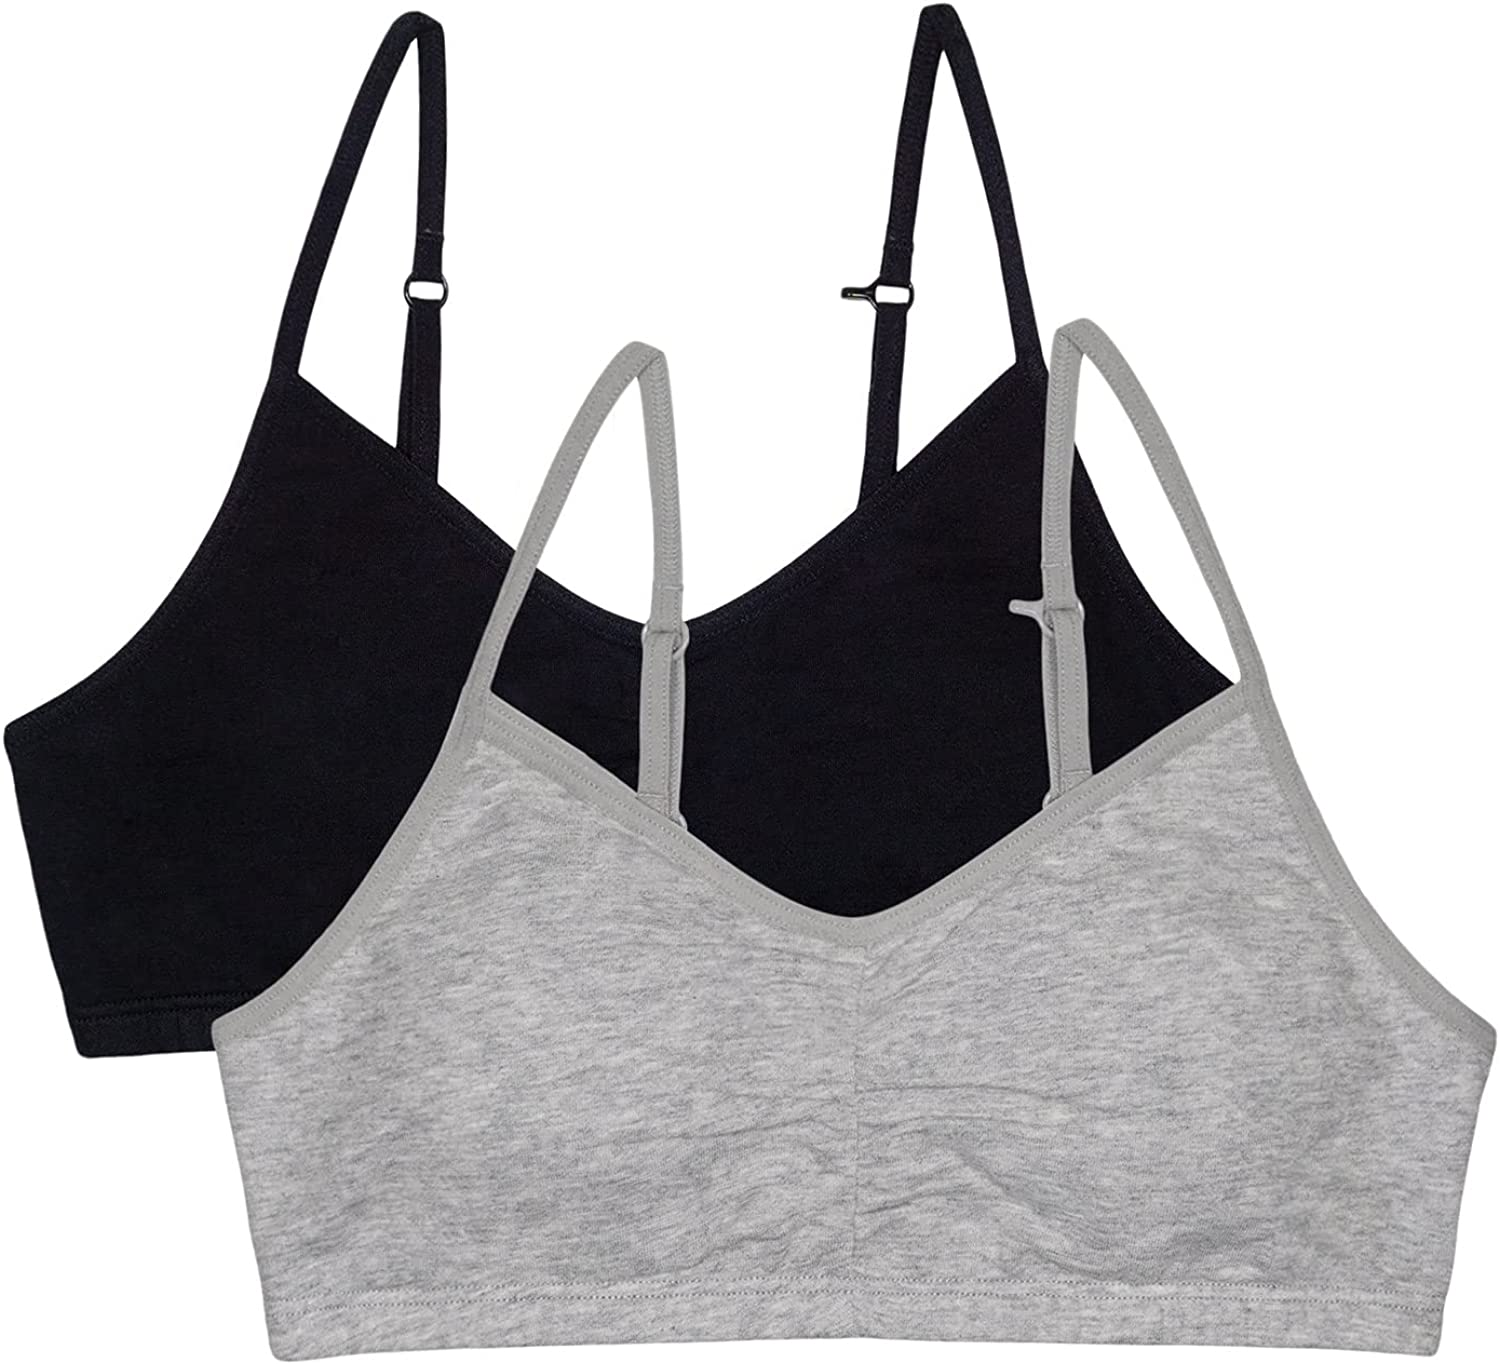 Fruit of the Loom Girls' Bra with Removable Cookies, 2-Pack: Clothing, Shoes & Jewelry